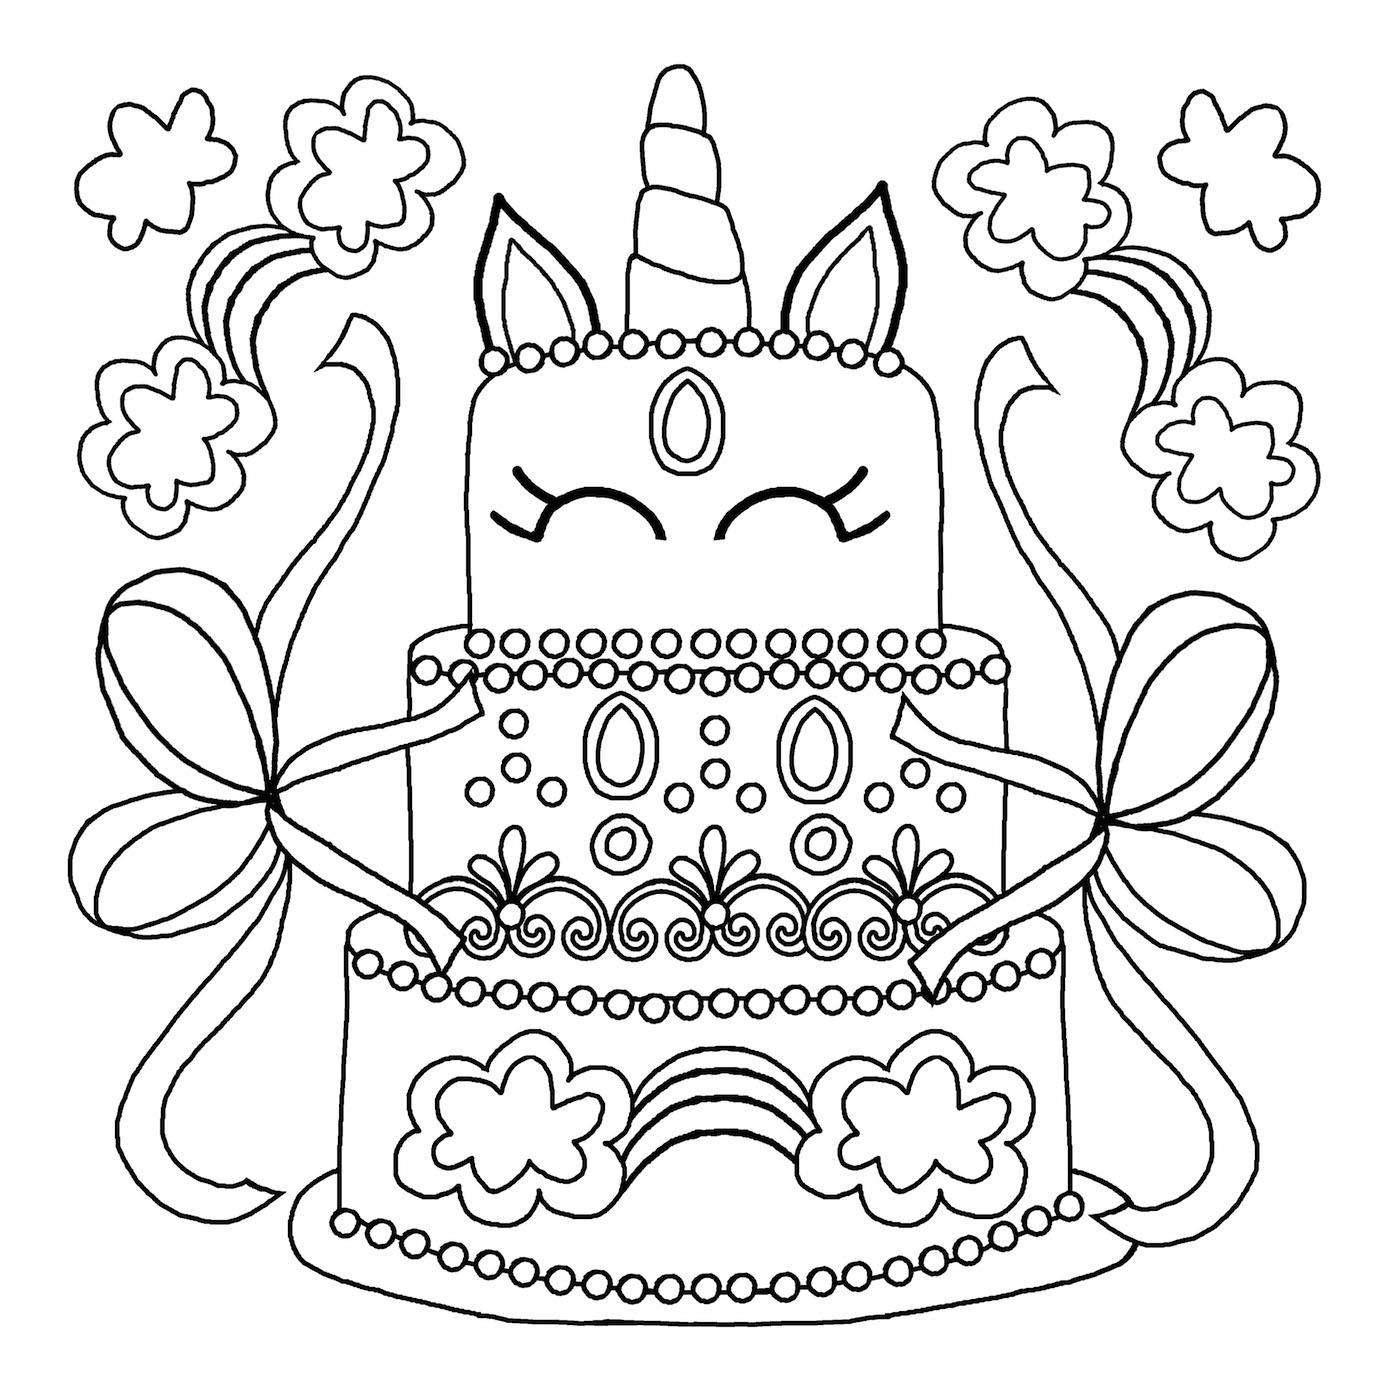 free printable coloring pages of unicorns unicorn coloring pages line art free printable coloring printable coloring pages of unicorns free